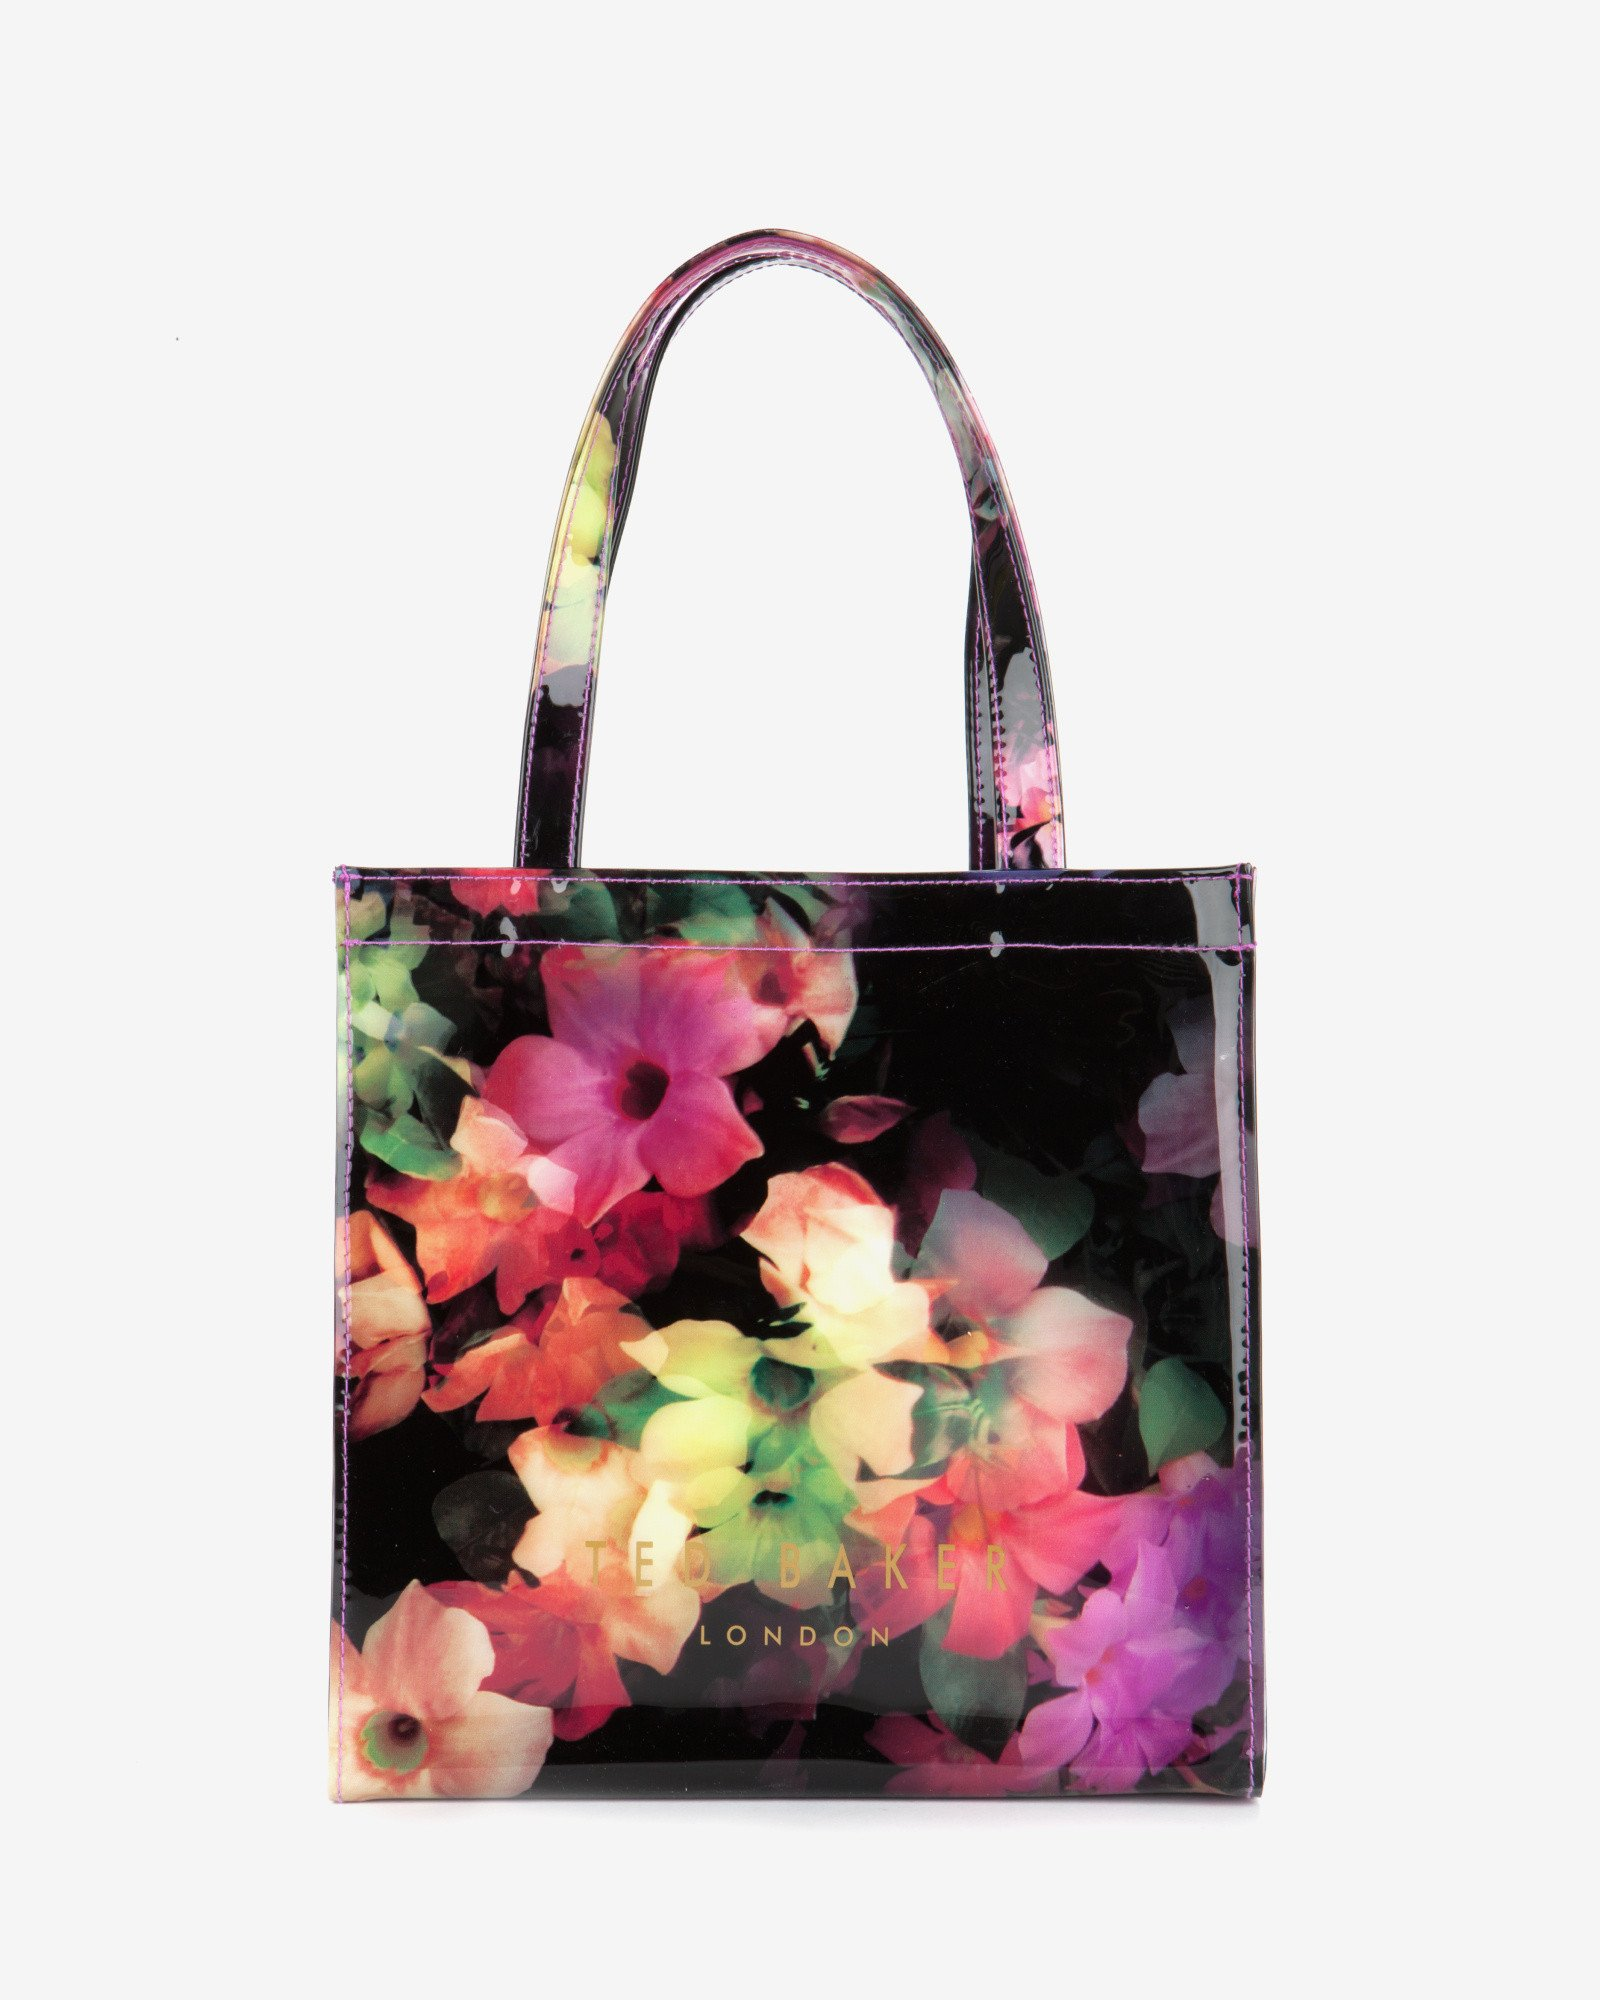 Ted Baker Small Floral Icon Bag Black on A Juicy Collection Of Blooms Digital